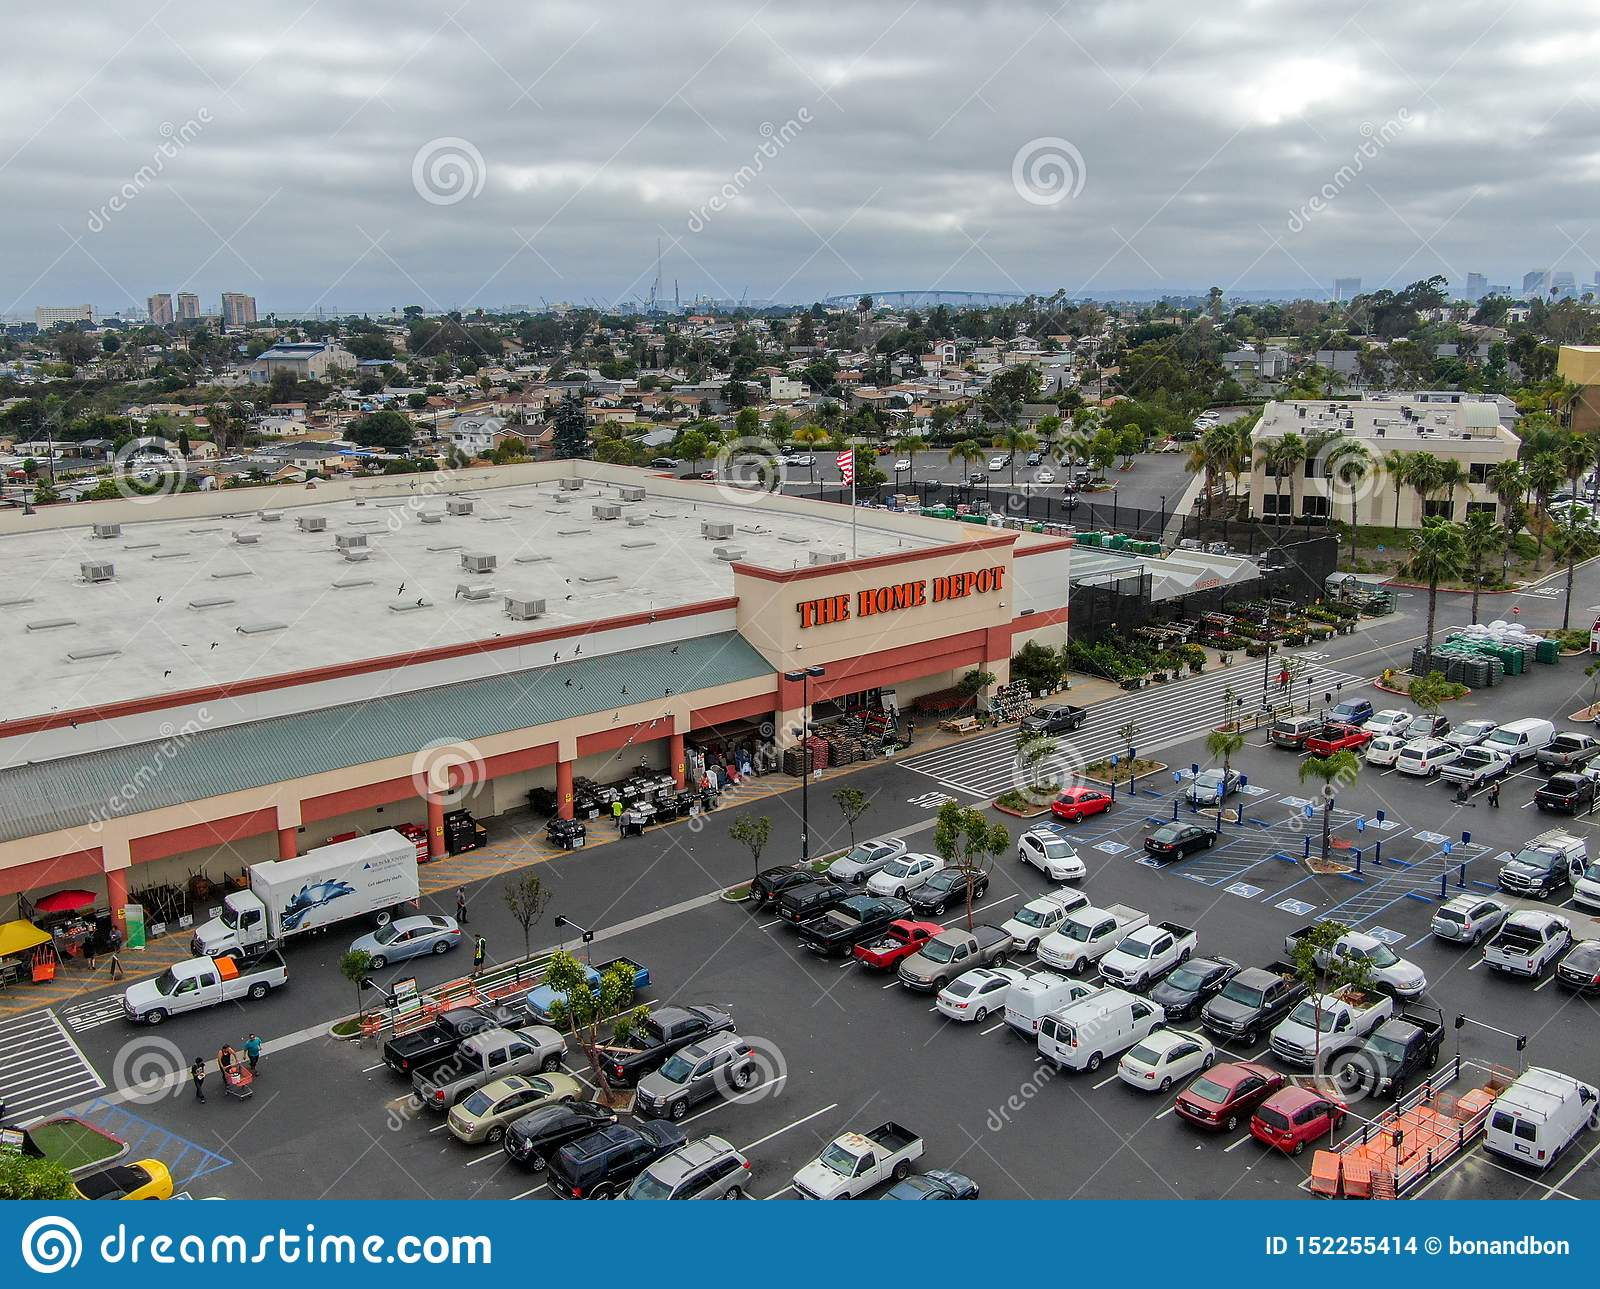 Aerial View Of The Home Depot Store And Parking Lot In San ...